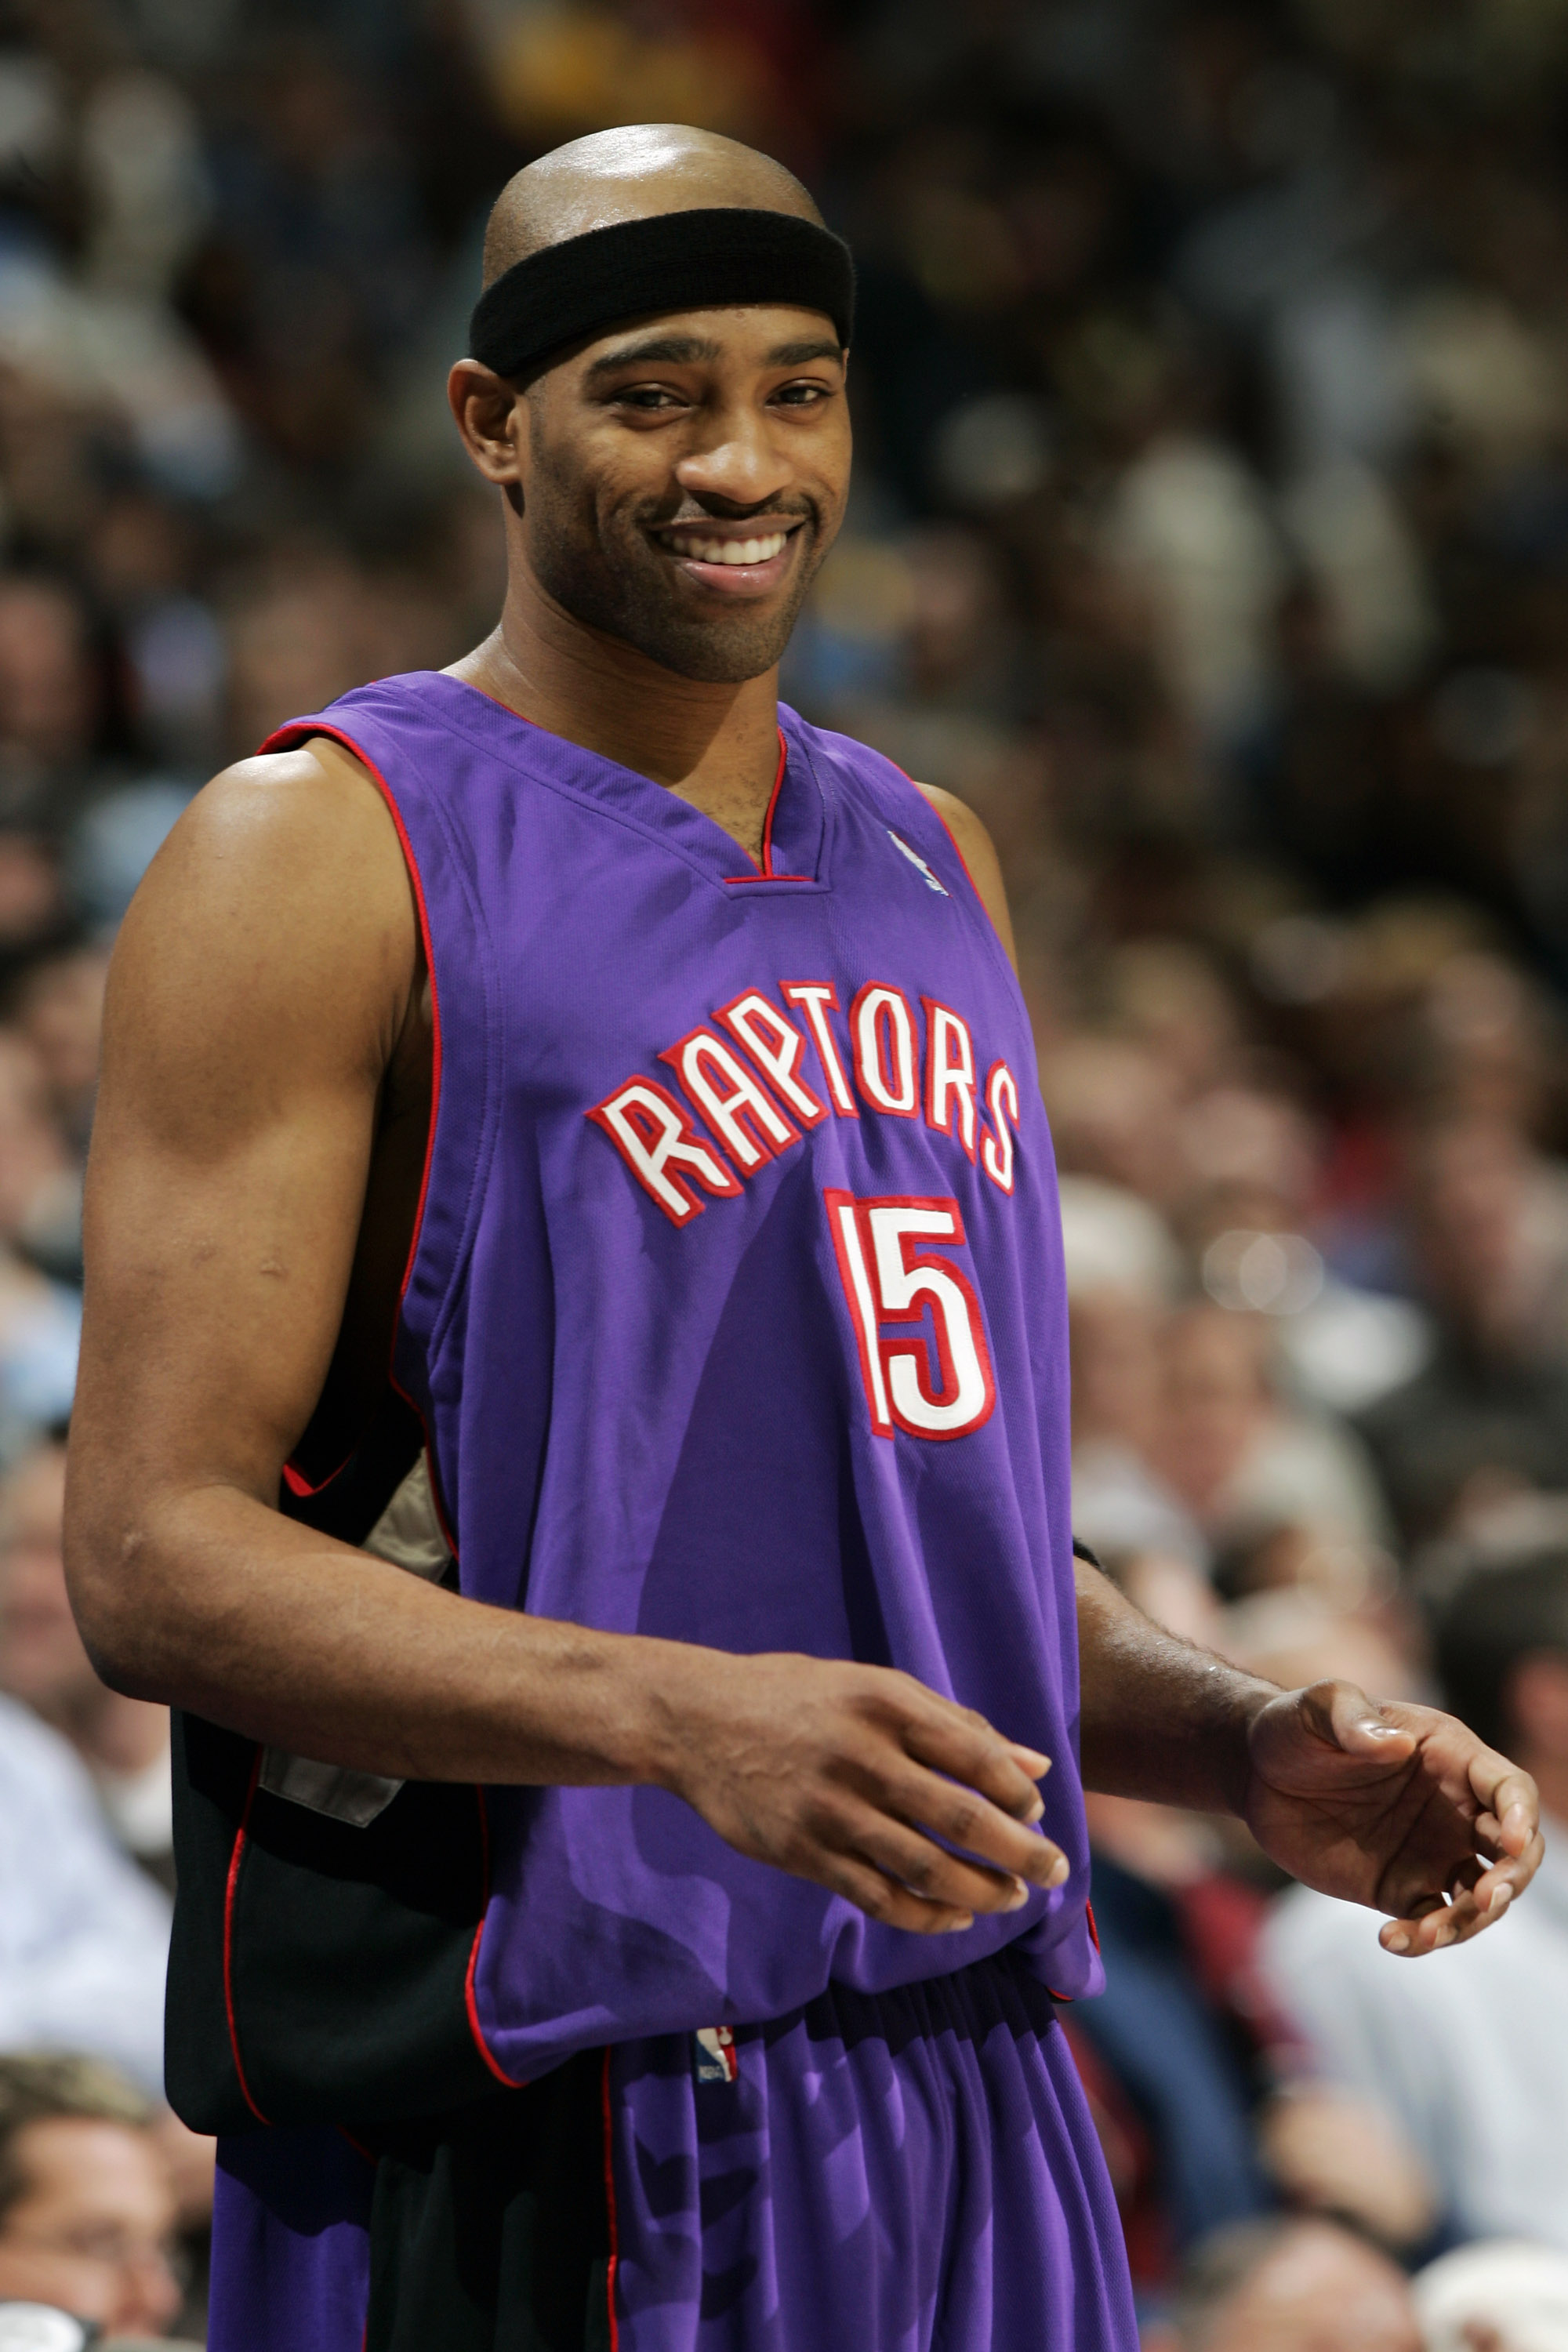 DENVER - NOVEMBER 17:  Vince Carter #15 of the Toronto Raptors smiles as he prepares to inbound the ball with less than a minute left in the game against the Denver Nuggets during NBA action on November 17, 2004 at the Pepsi Center in Denver, Colorado.  T